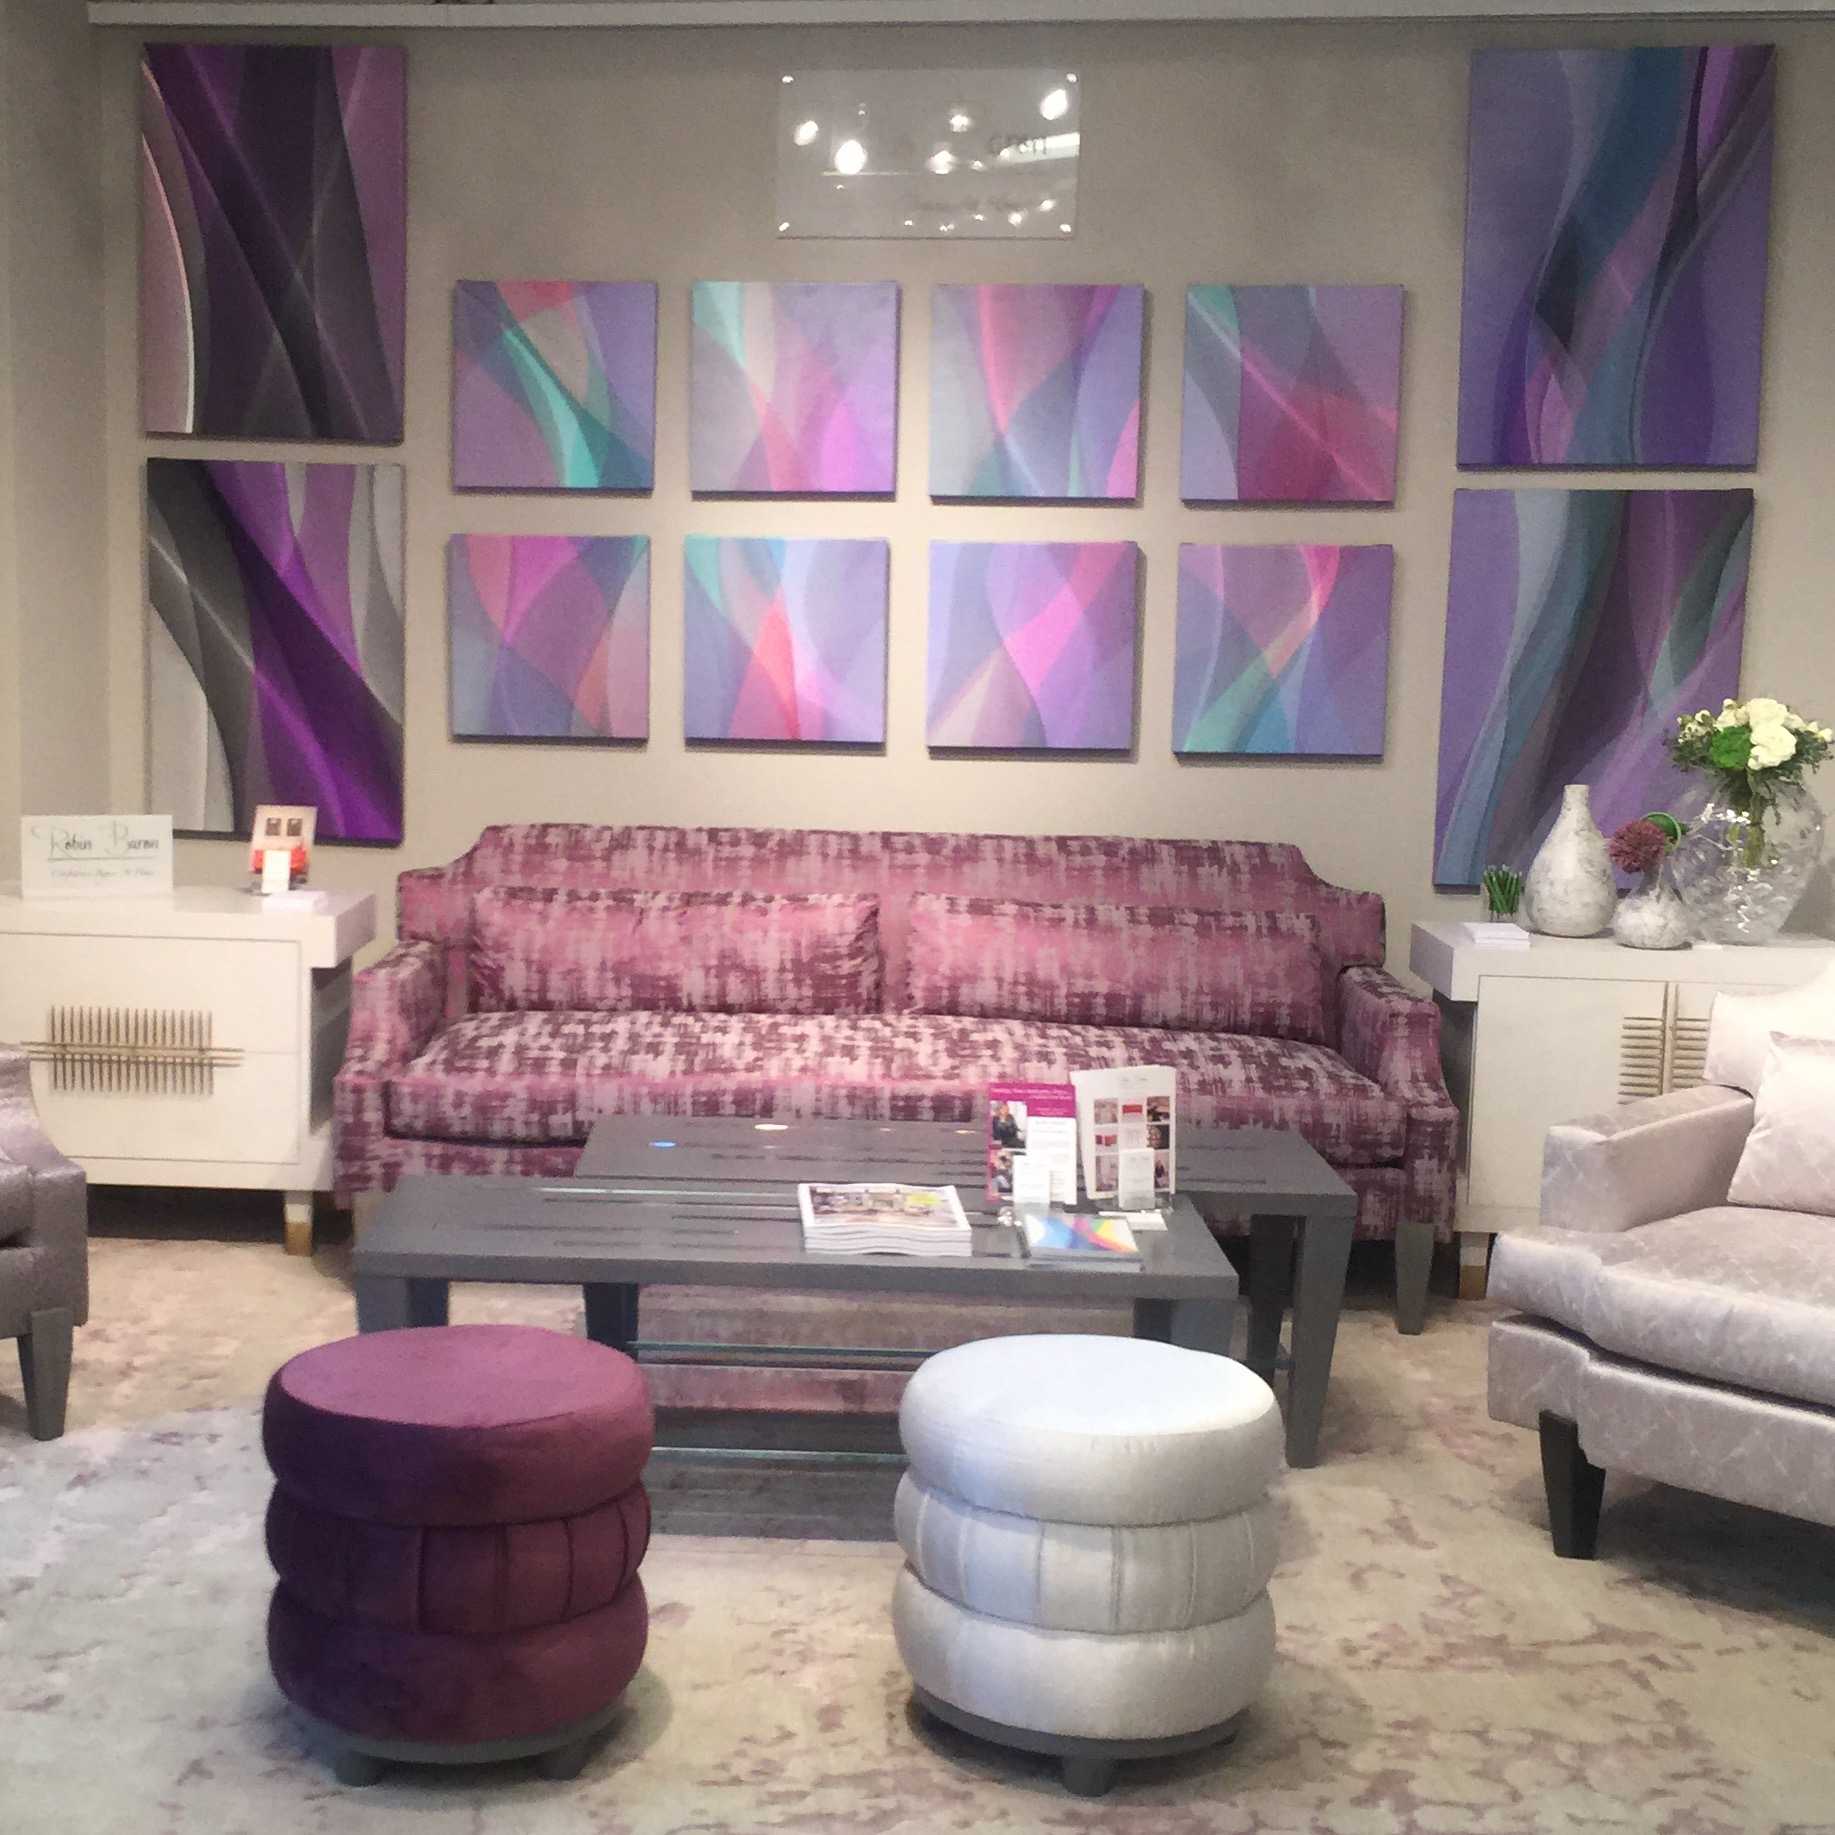 The Antiques Diva Takes Over HPMKT